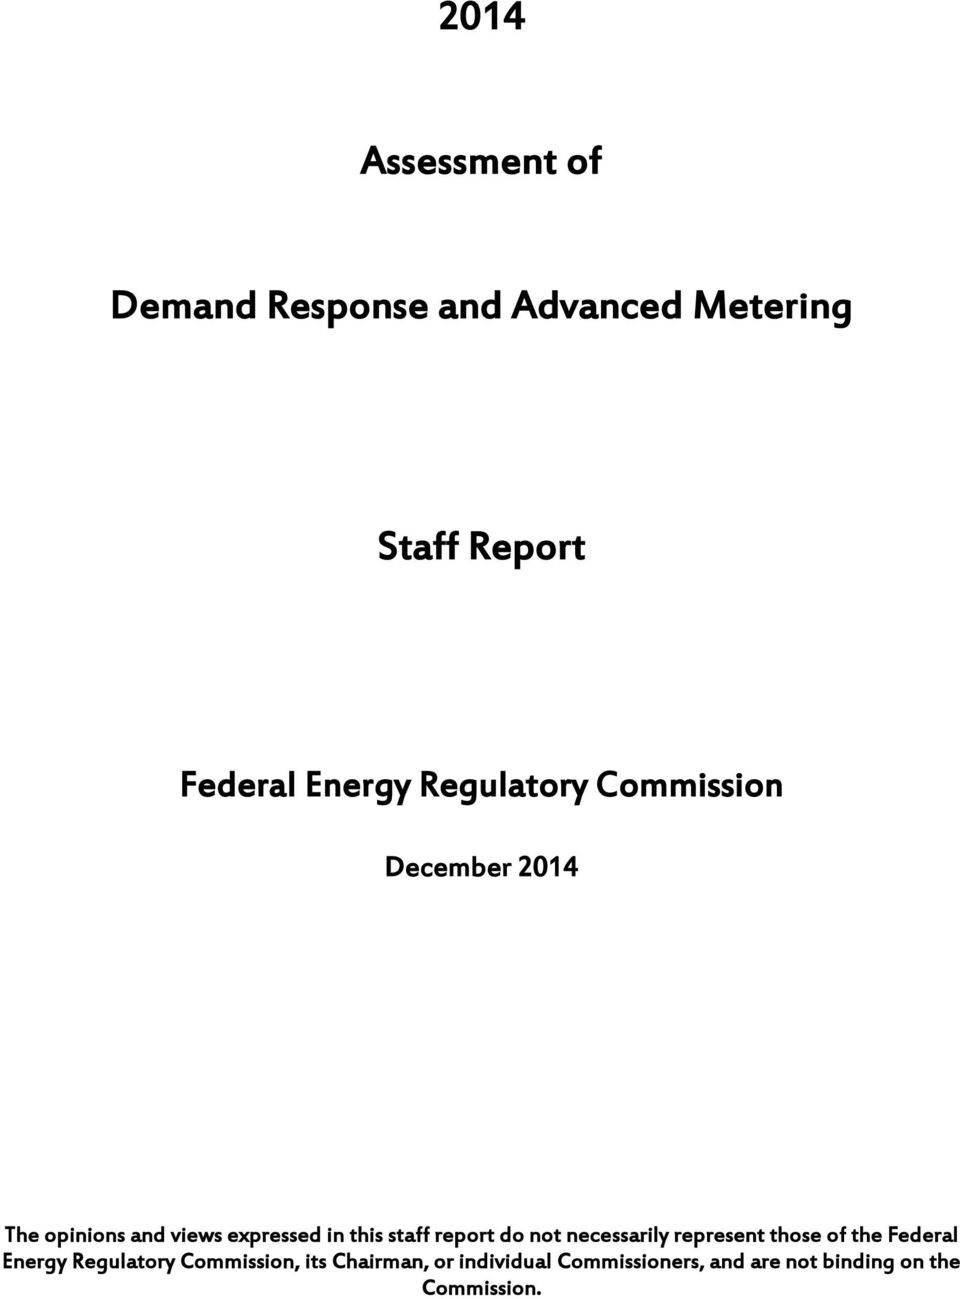 staff report do not necessarily represent those of the Federal Energy Regulatory